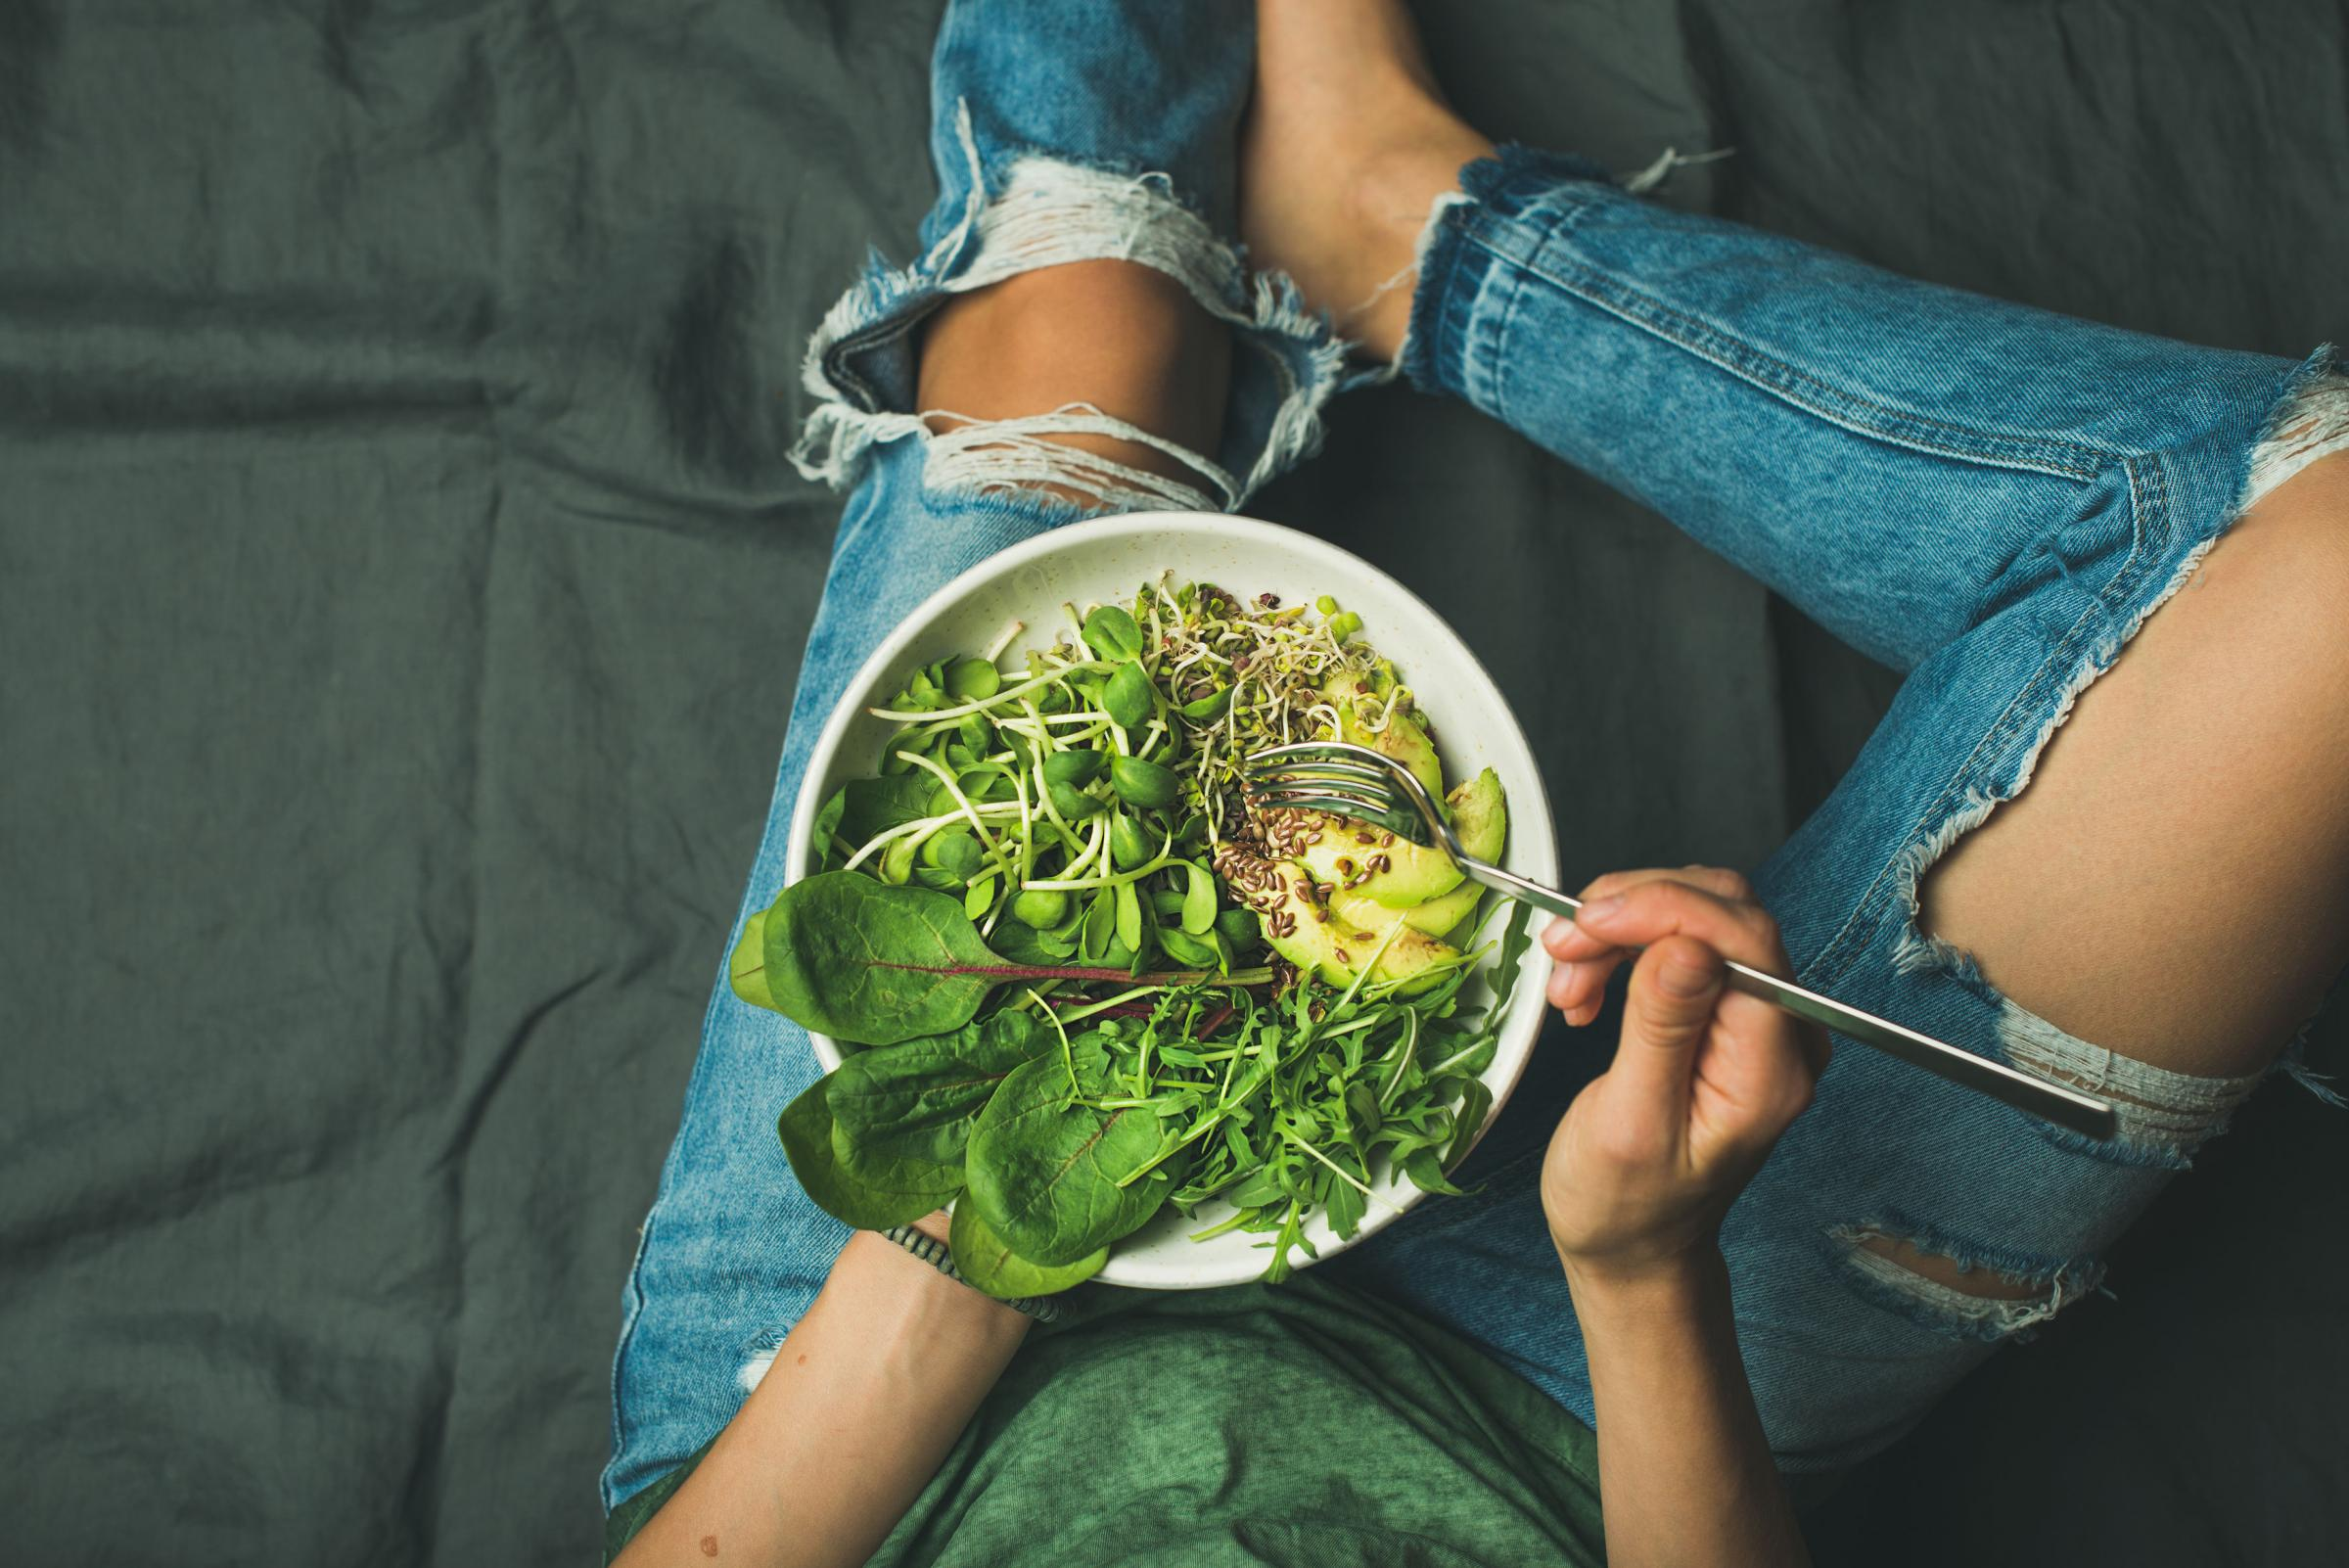 Fasting by eating a bowl of greens. PA Photo/thinkstockphotos.